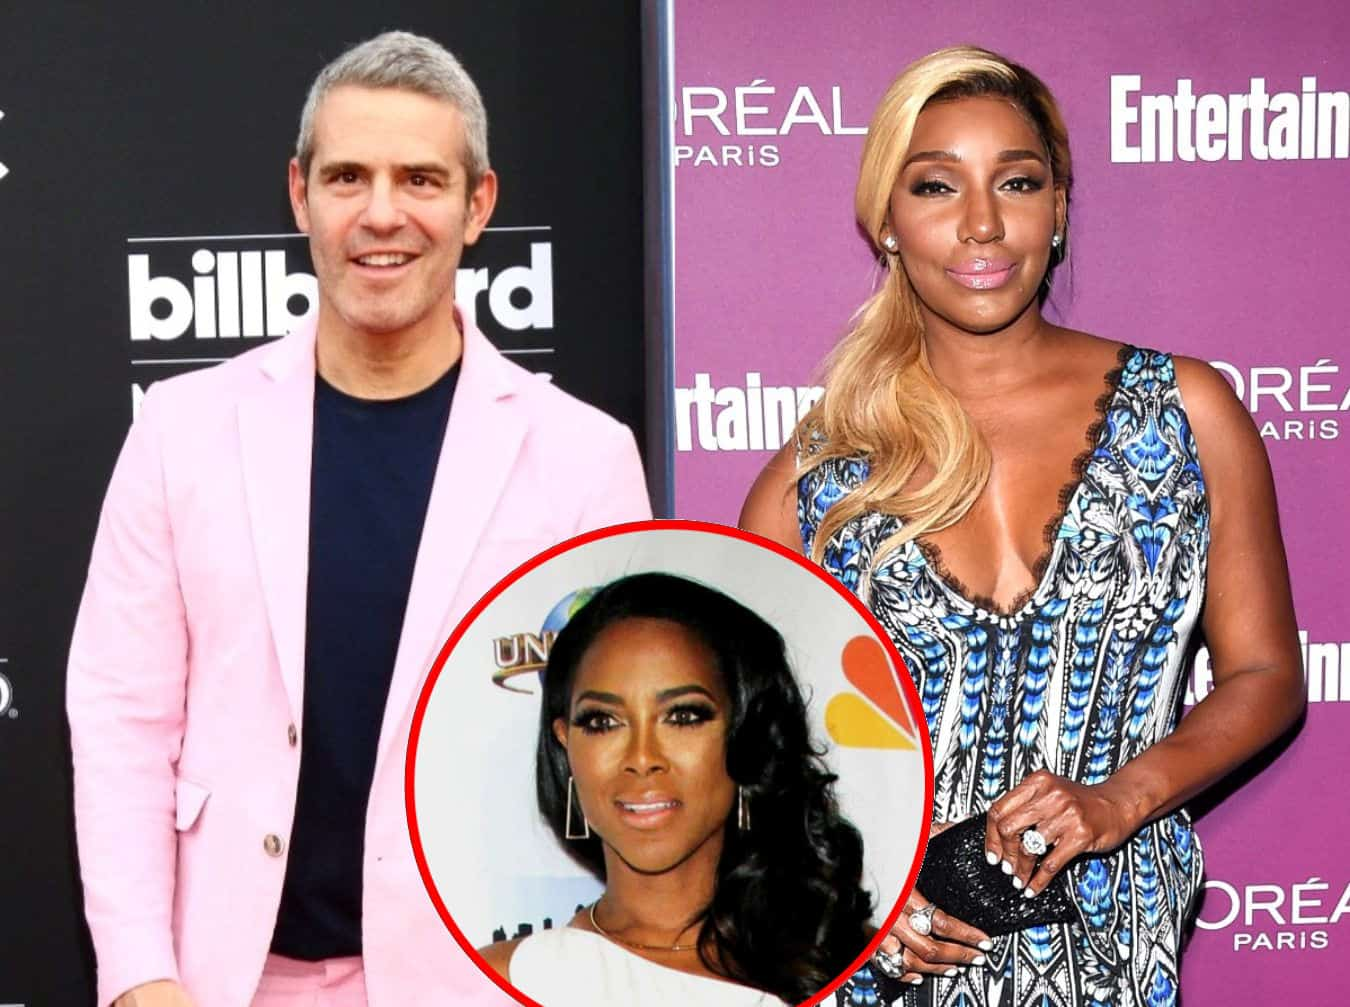 Andy Cohen Reacts to Claim That Nene Leakes is Being Phased Out of RHOA Made by Kenya as Nene Slams 'Shady' Co-Stars and Suggests They're Sabotaging Her